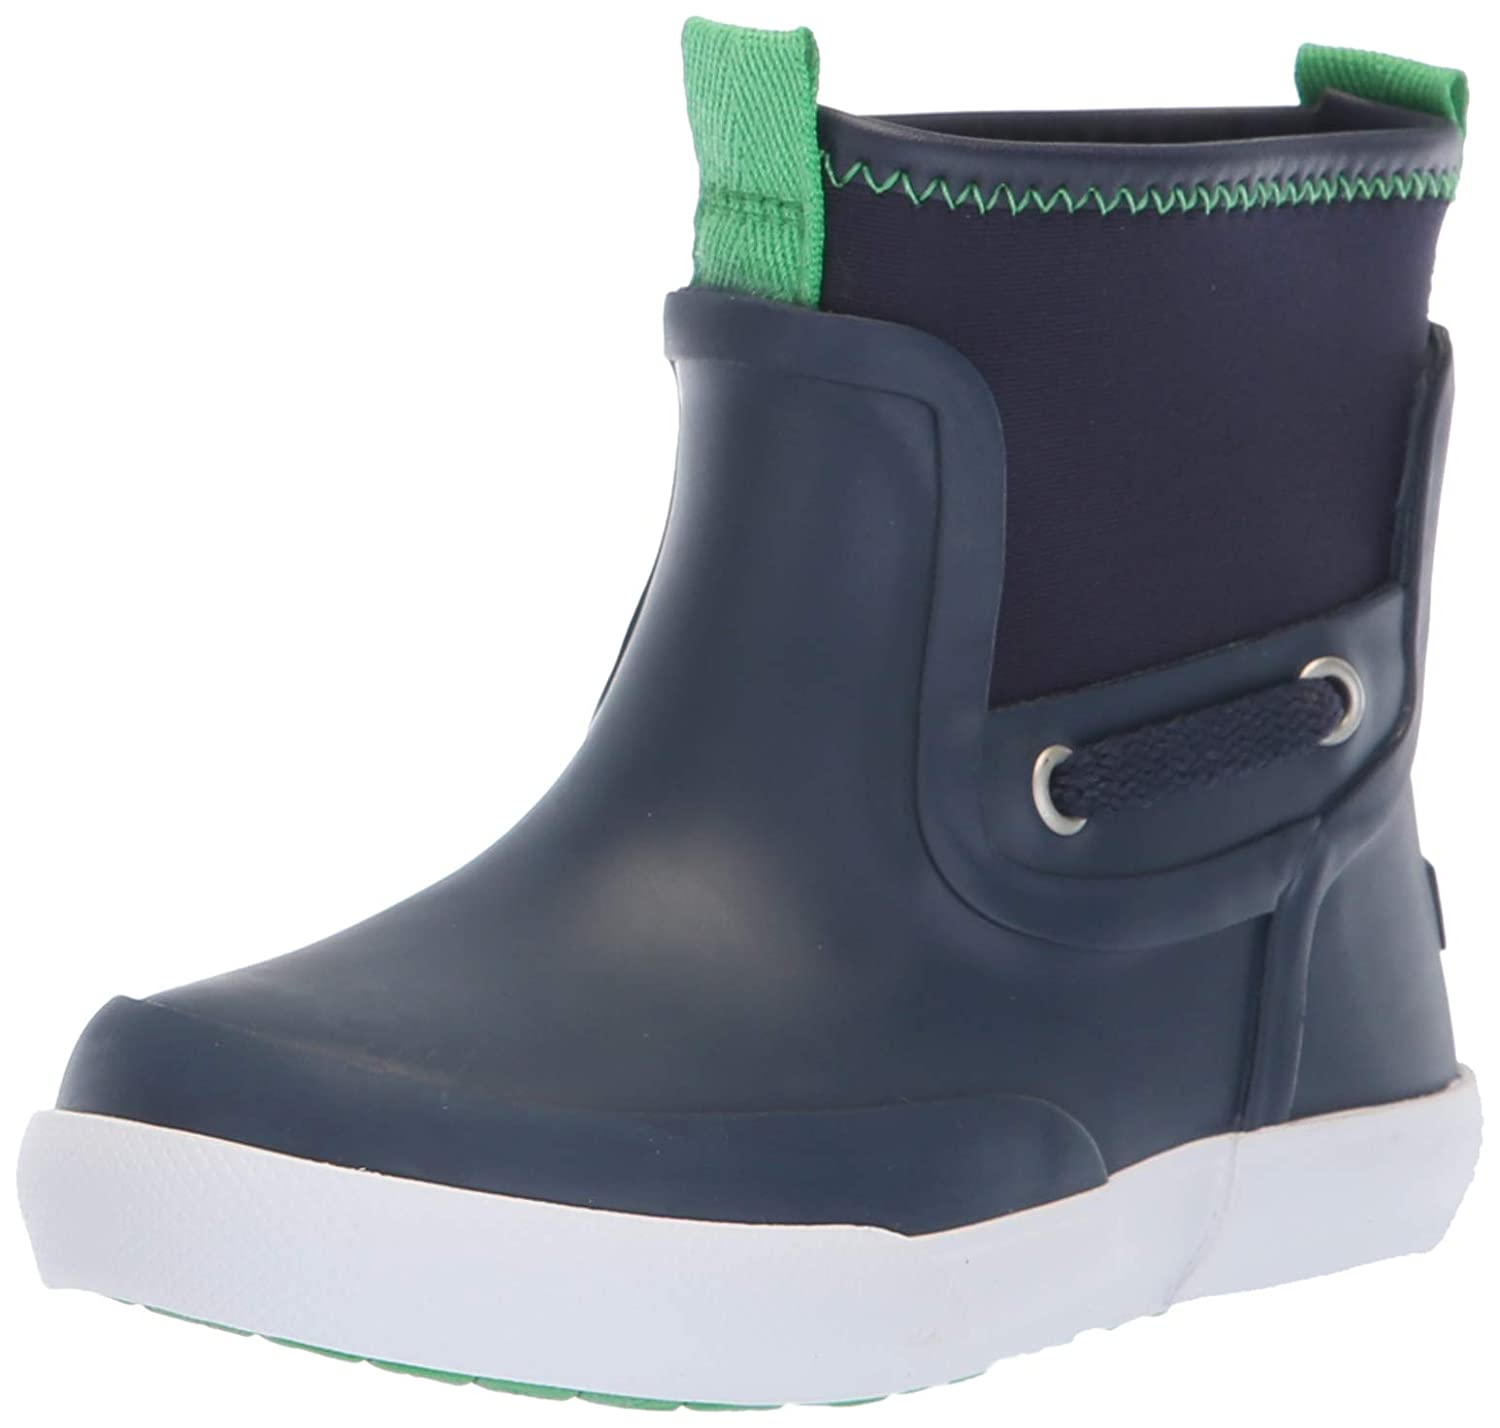 Sperry Kids Seawall Boot Sneaker